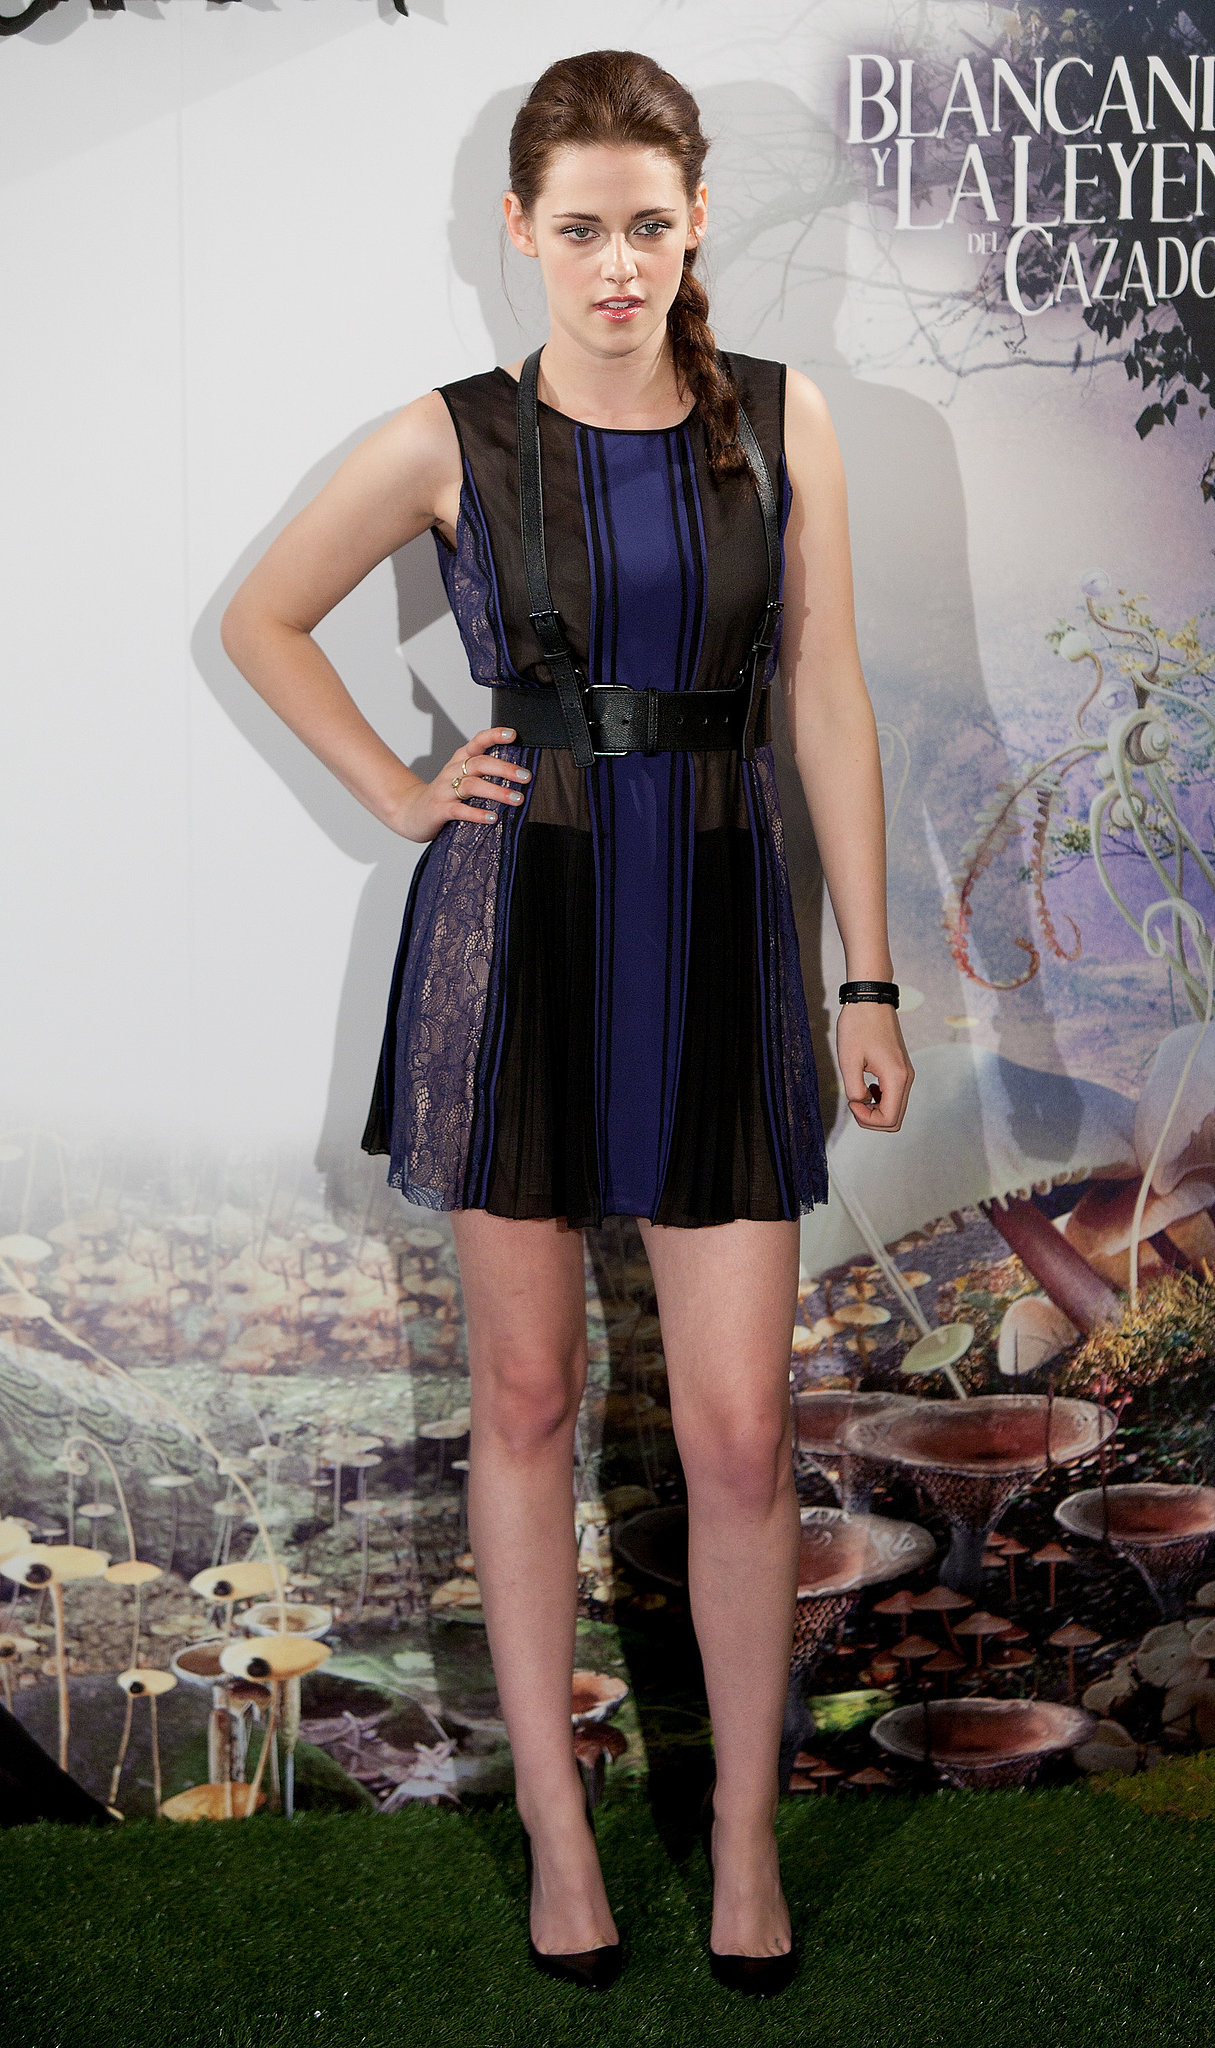 Stewart married black and blue in a lace-paneled, fit-and-flare dress for the Madrid photocall of Snow White and the Huntsman in May 2012.